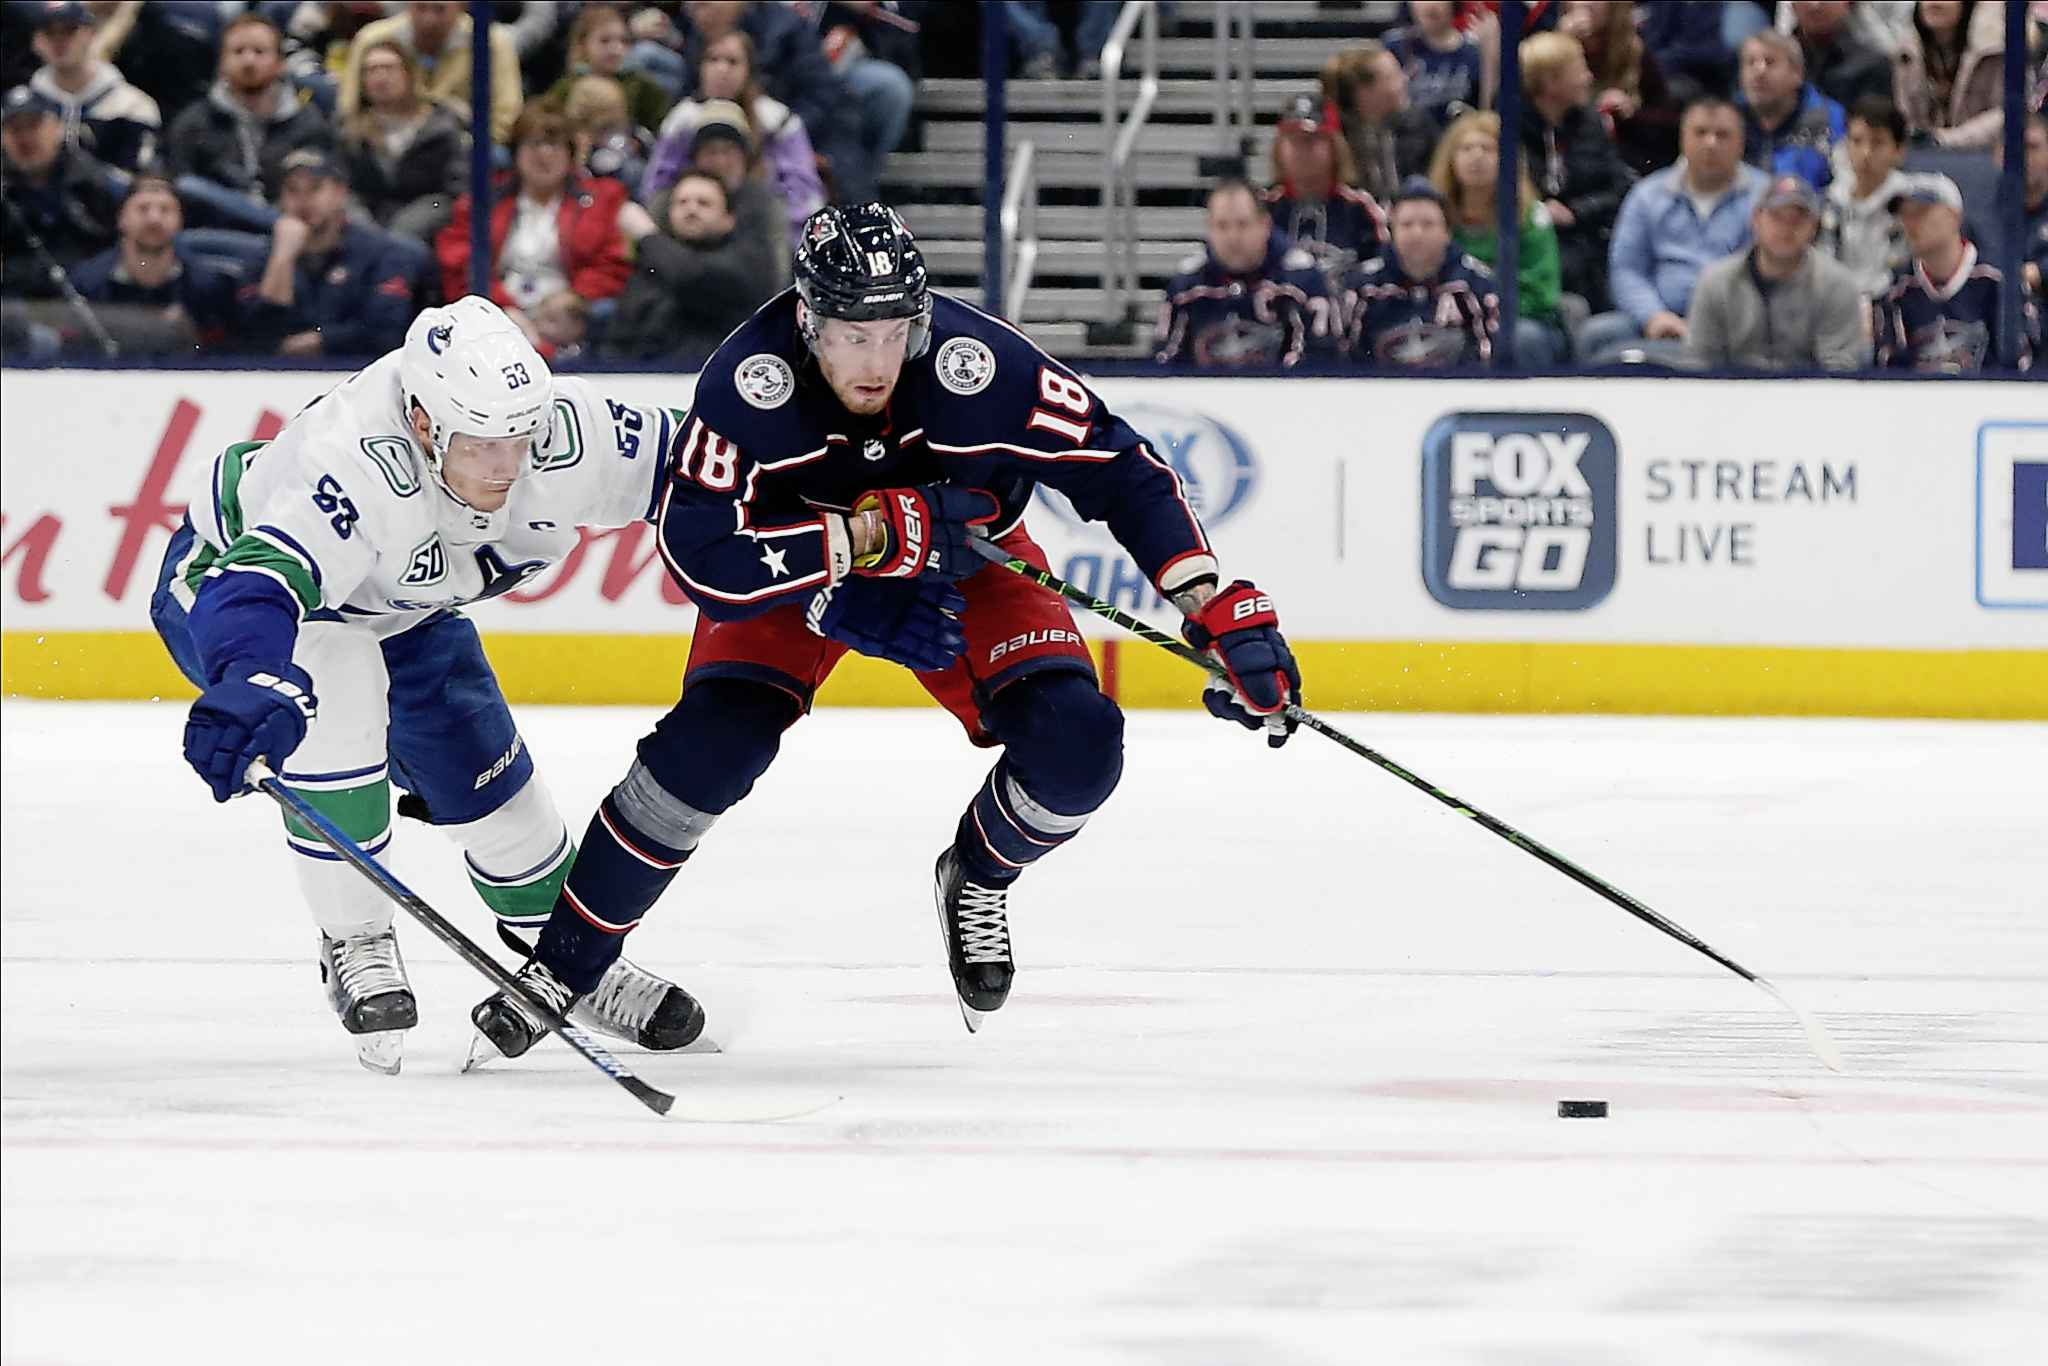 Pierre-Luc Dubois is considered a true power forward, and his father, Eric, is an assistant coach with the Manitoba Moose. (Jay LaPrete / The Associated Press files)